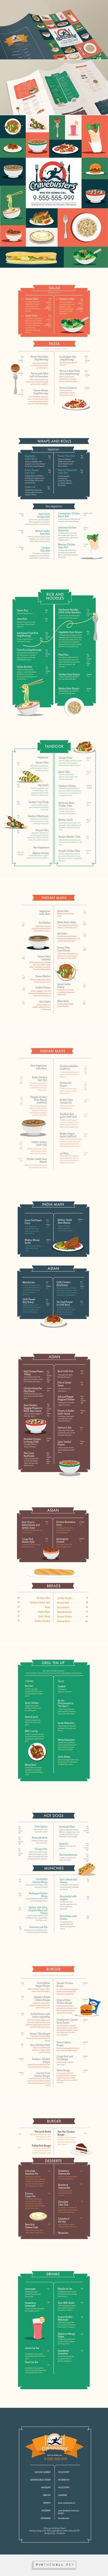 Cravebusters (Midnight food delivery) - Takeaway Menu by Ramsha Qamar